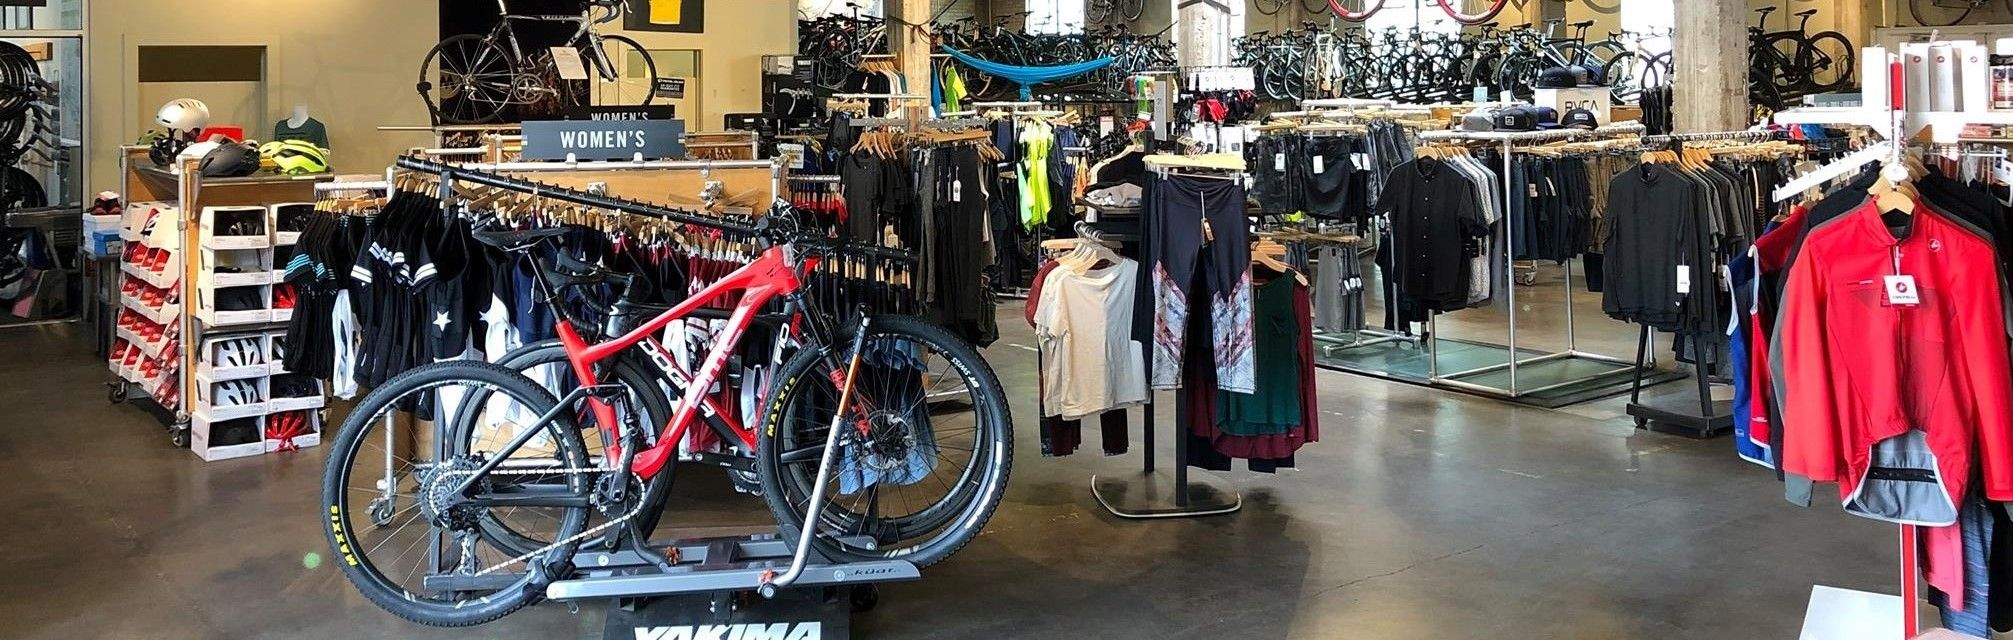 Why Buy Your Next Bike Here?